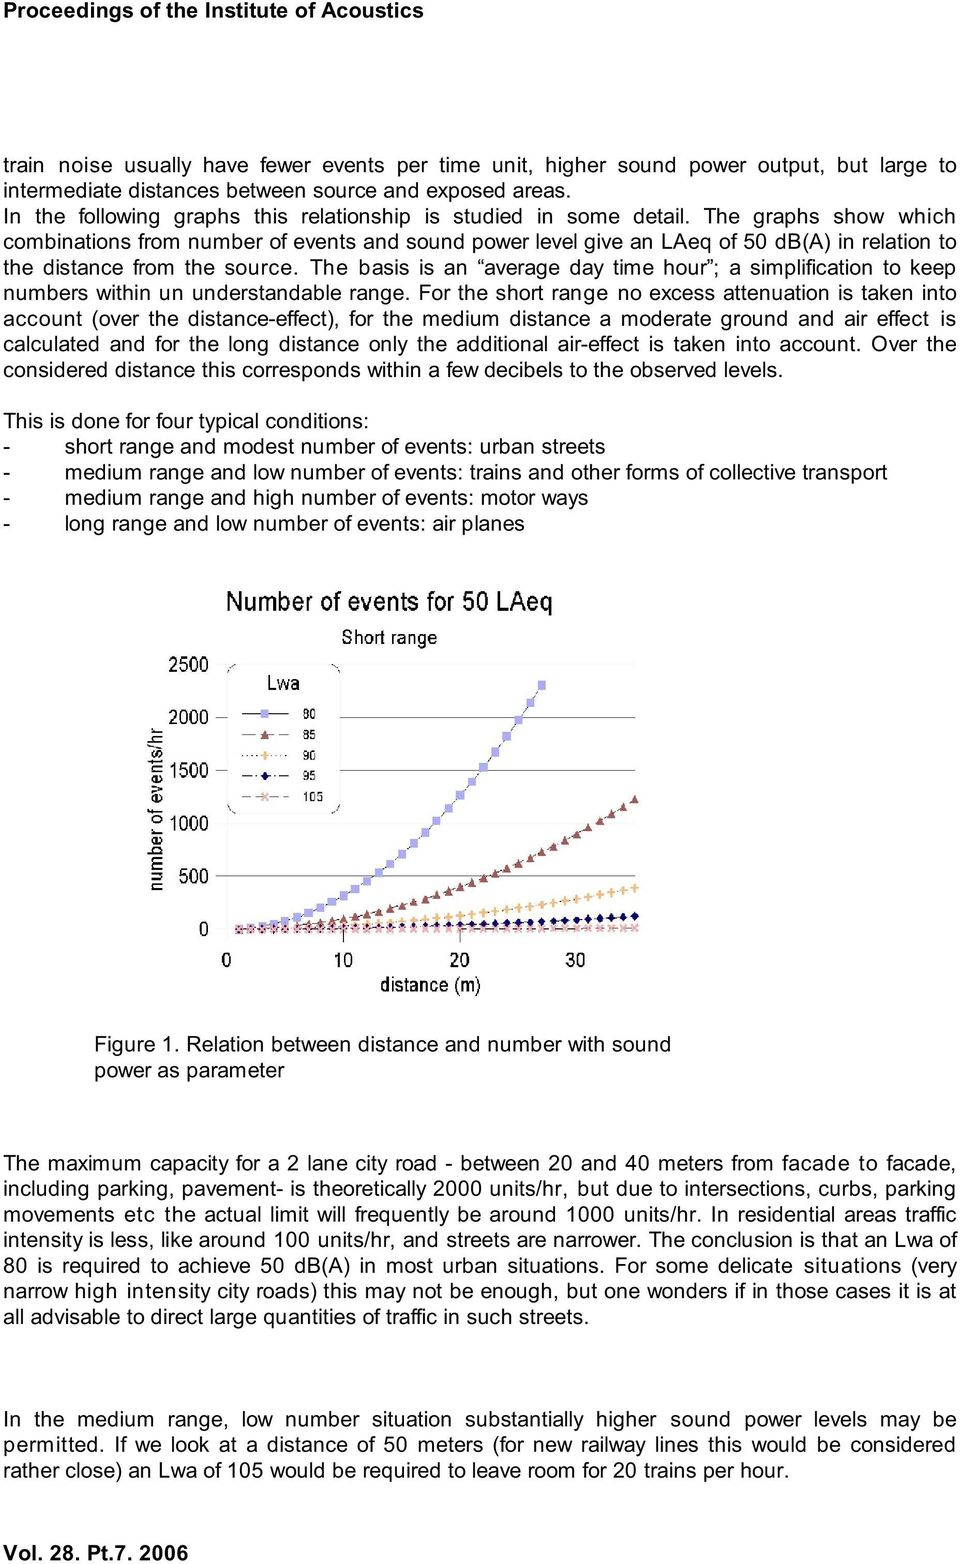 The graphs show which combinations from number of events and sound power level give an LAeq of 50 db(a) in relation to the distance from the source.